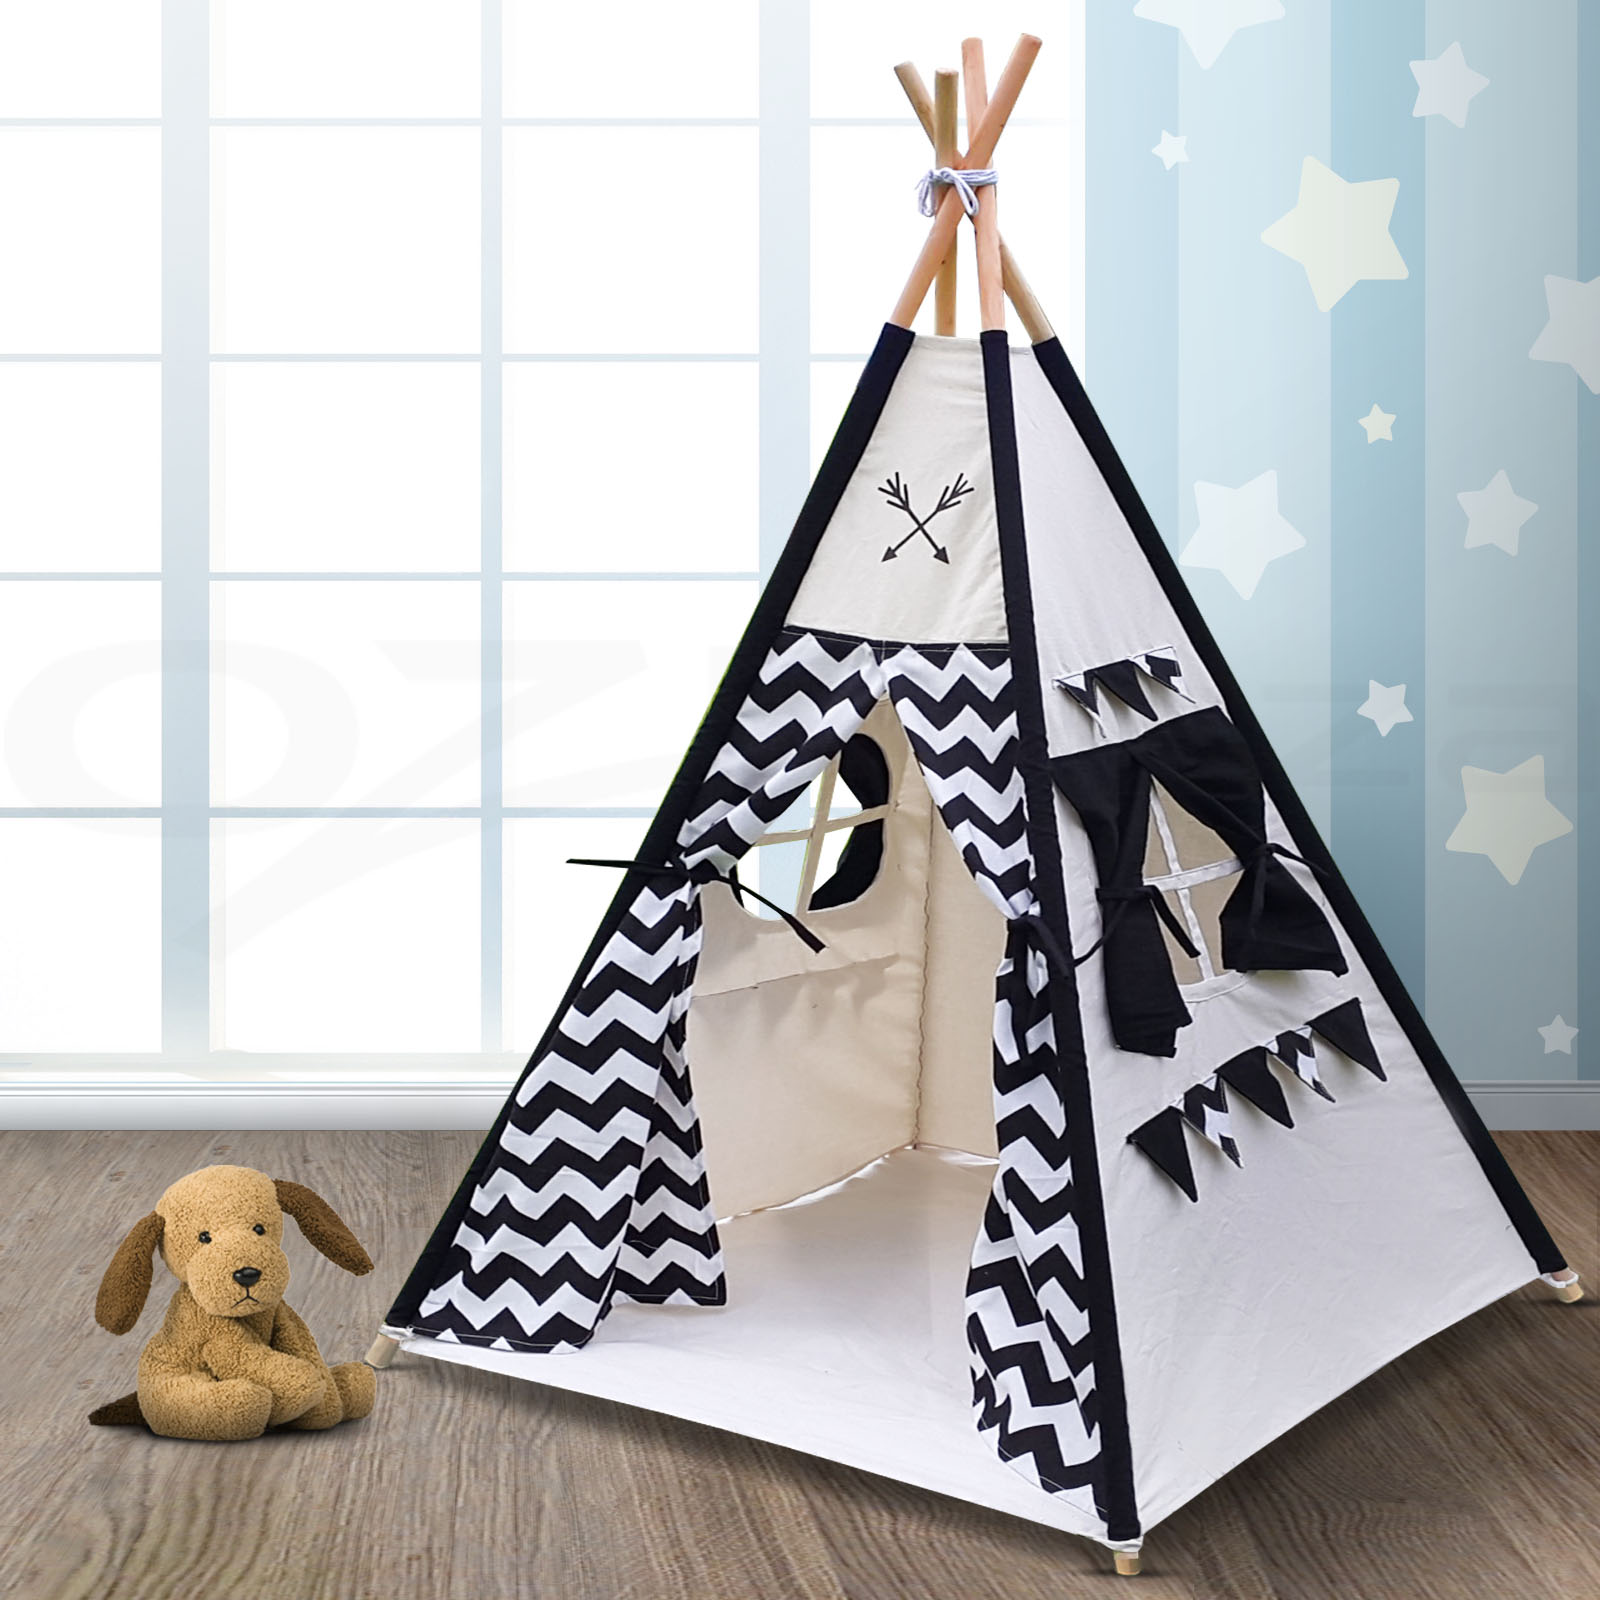 Kids Teepee Australia Kids Teepee Tent Children Home Canvas Pretend Play